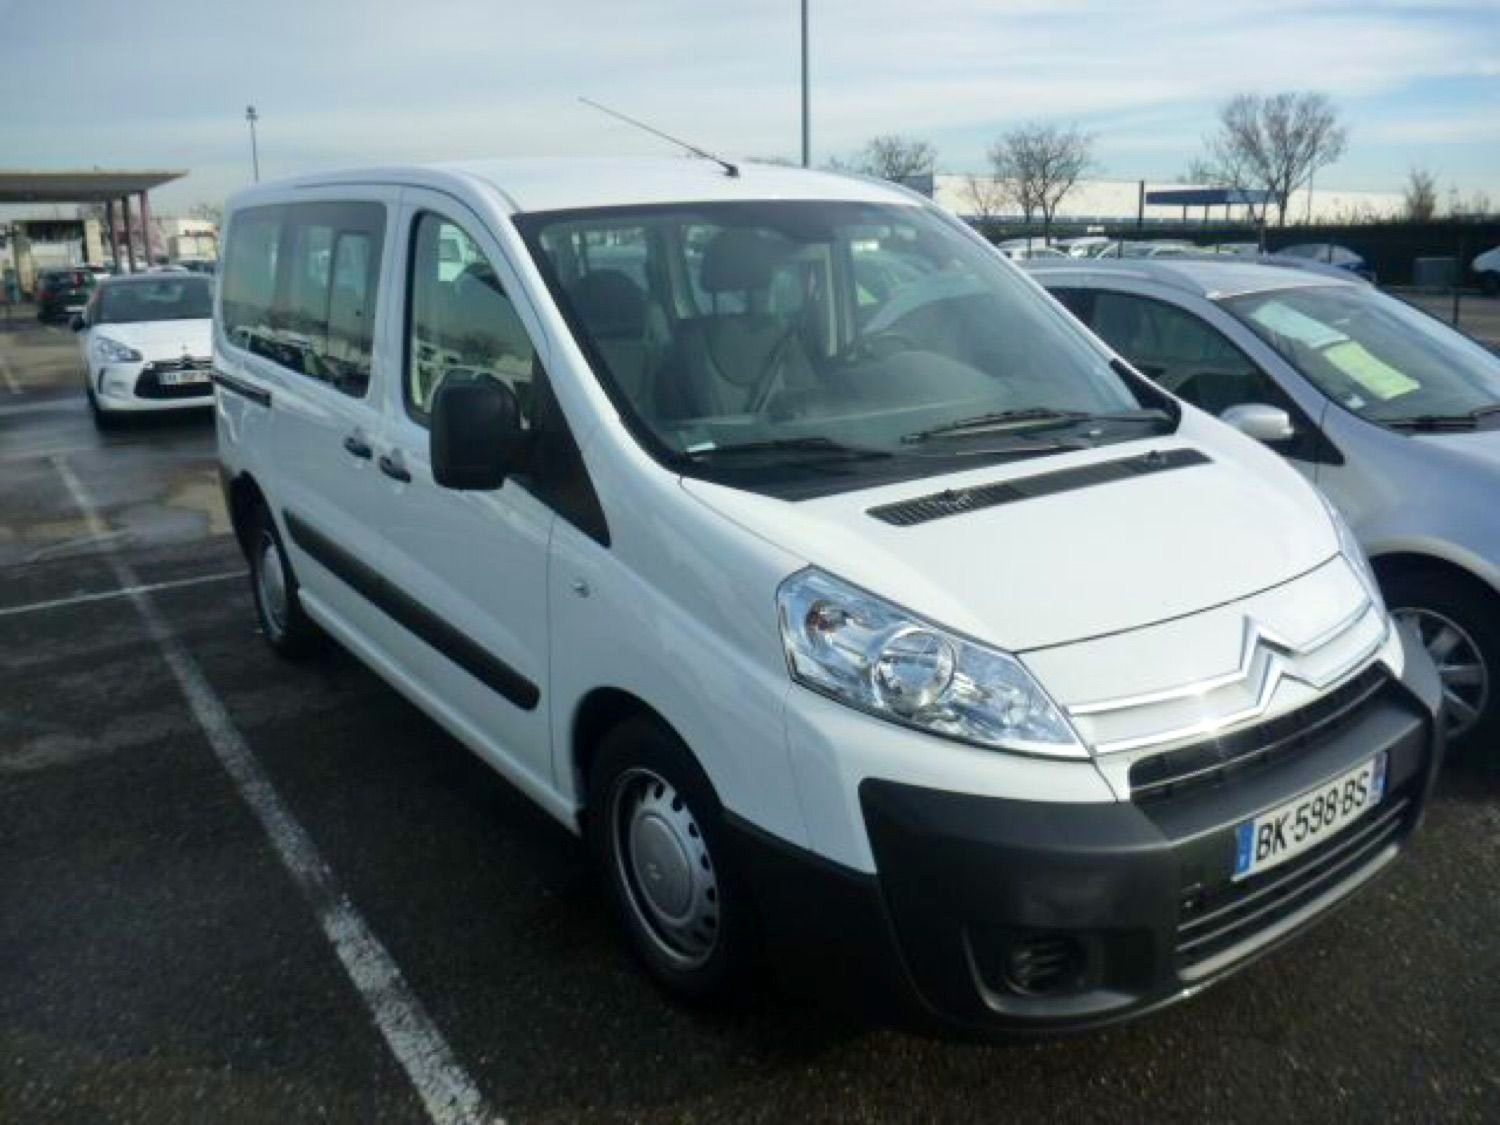 Citroën Jumpy 2l Hdi Combi, 2012, Diesel, 9 places et plus